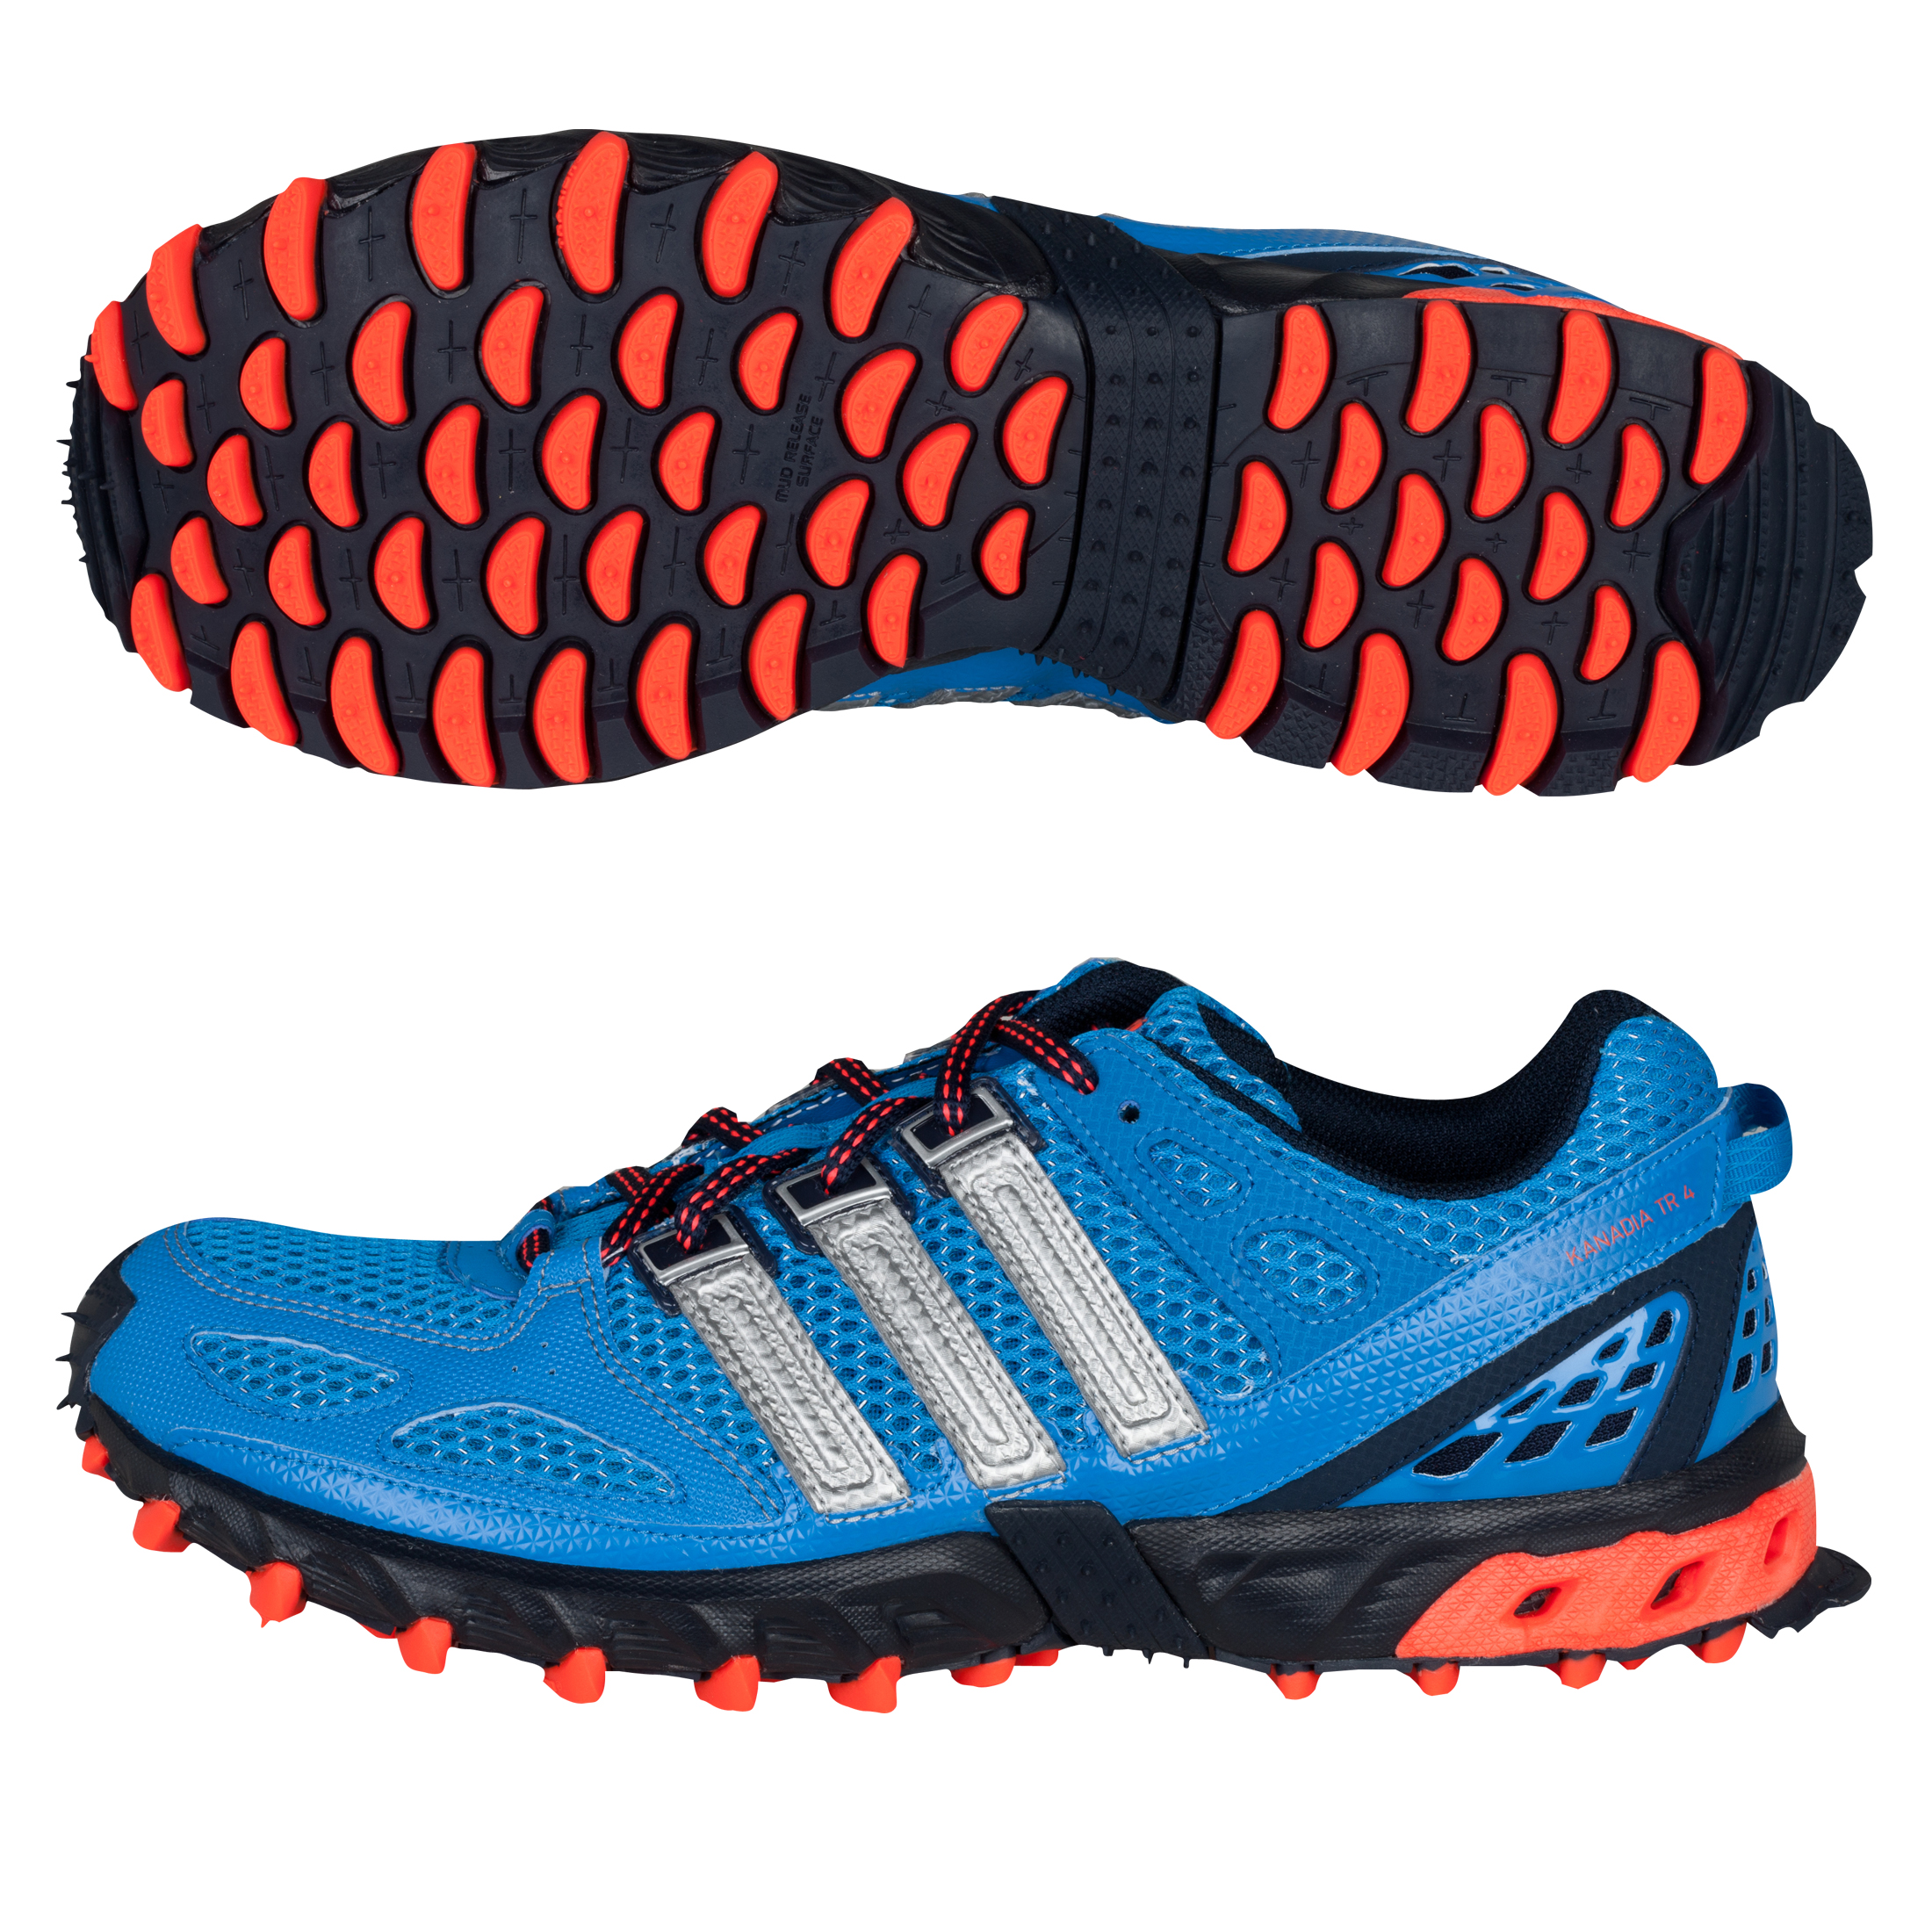 Adidas Kanadia 4 TR Running Trainers - Bright Blue/Metallic Silver/Infrared